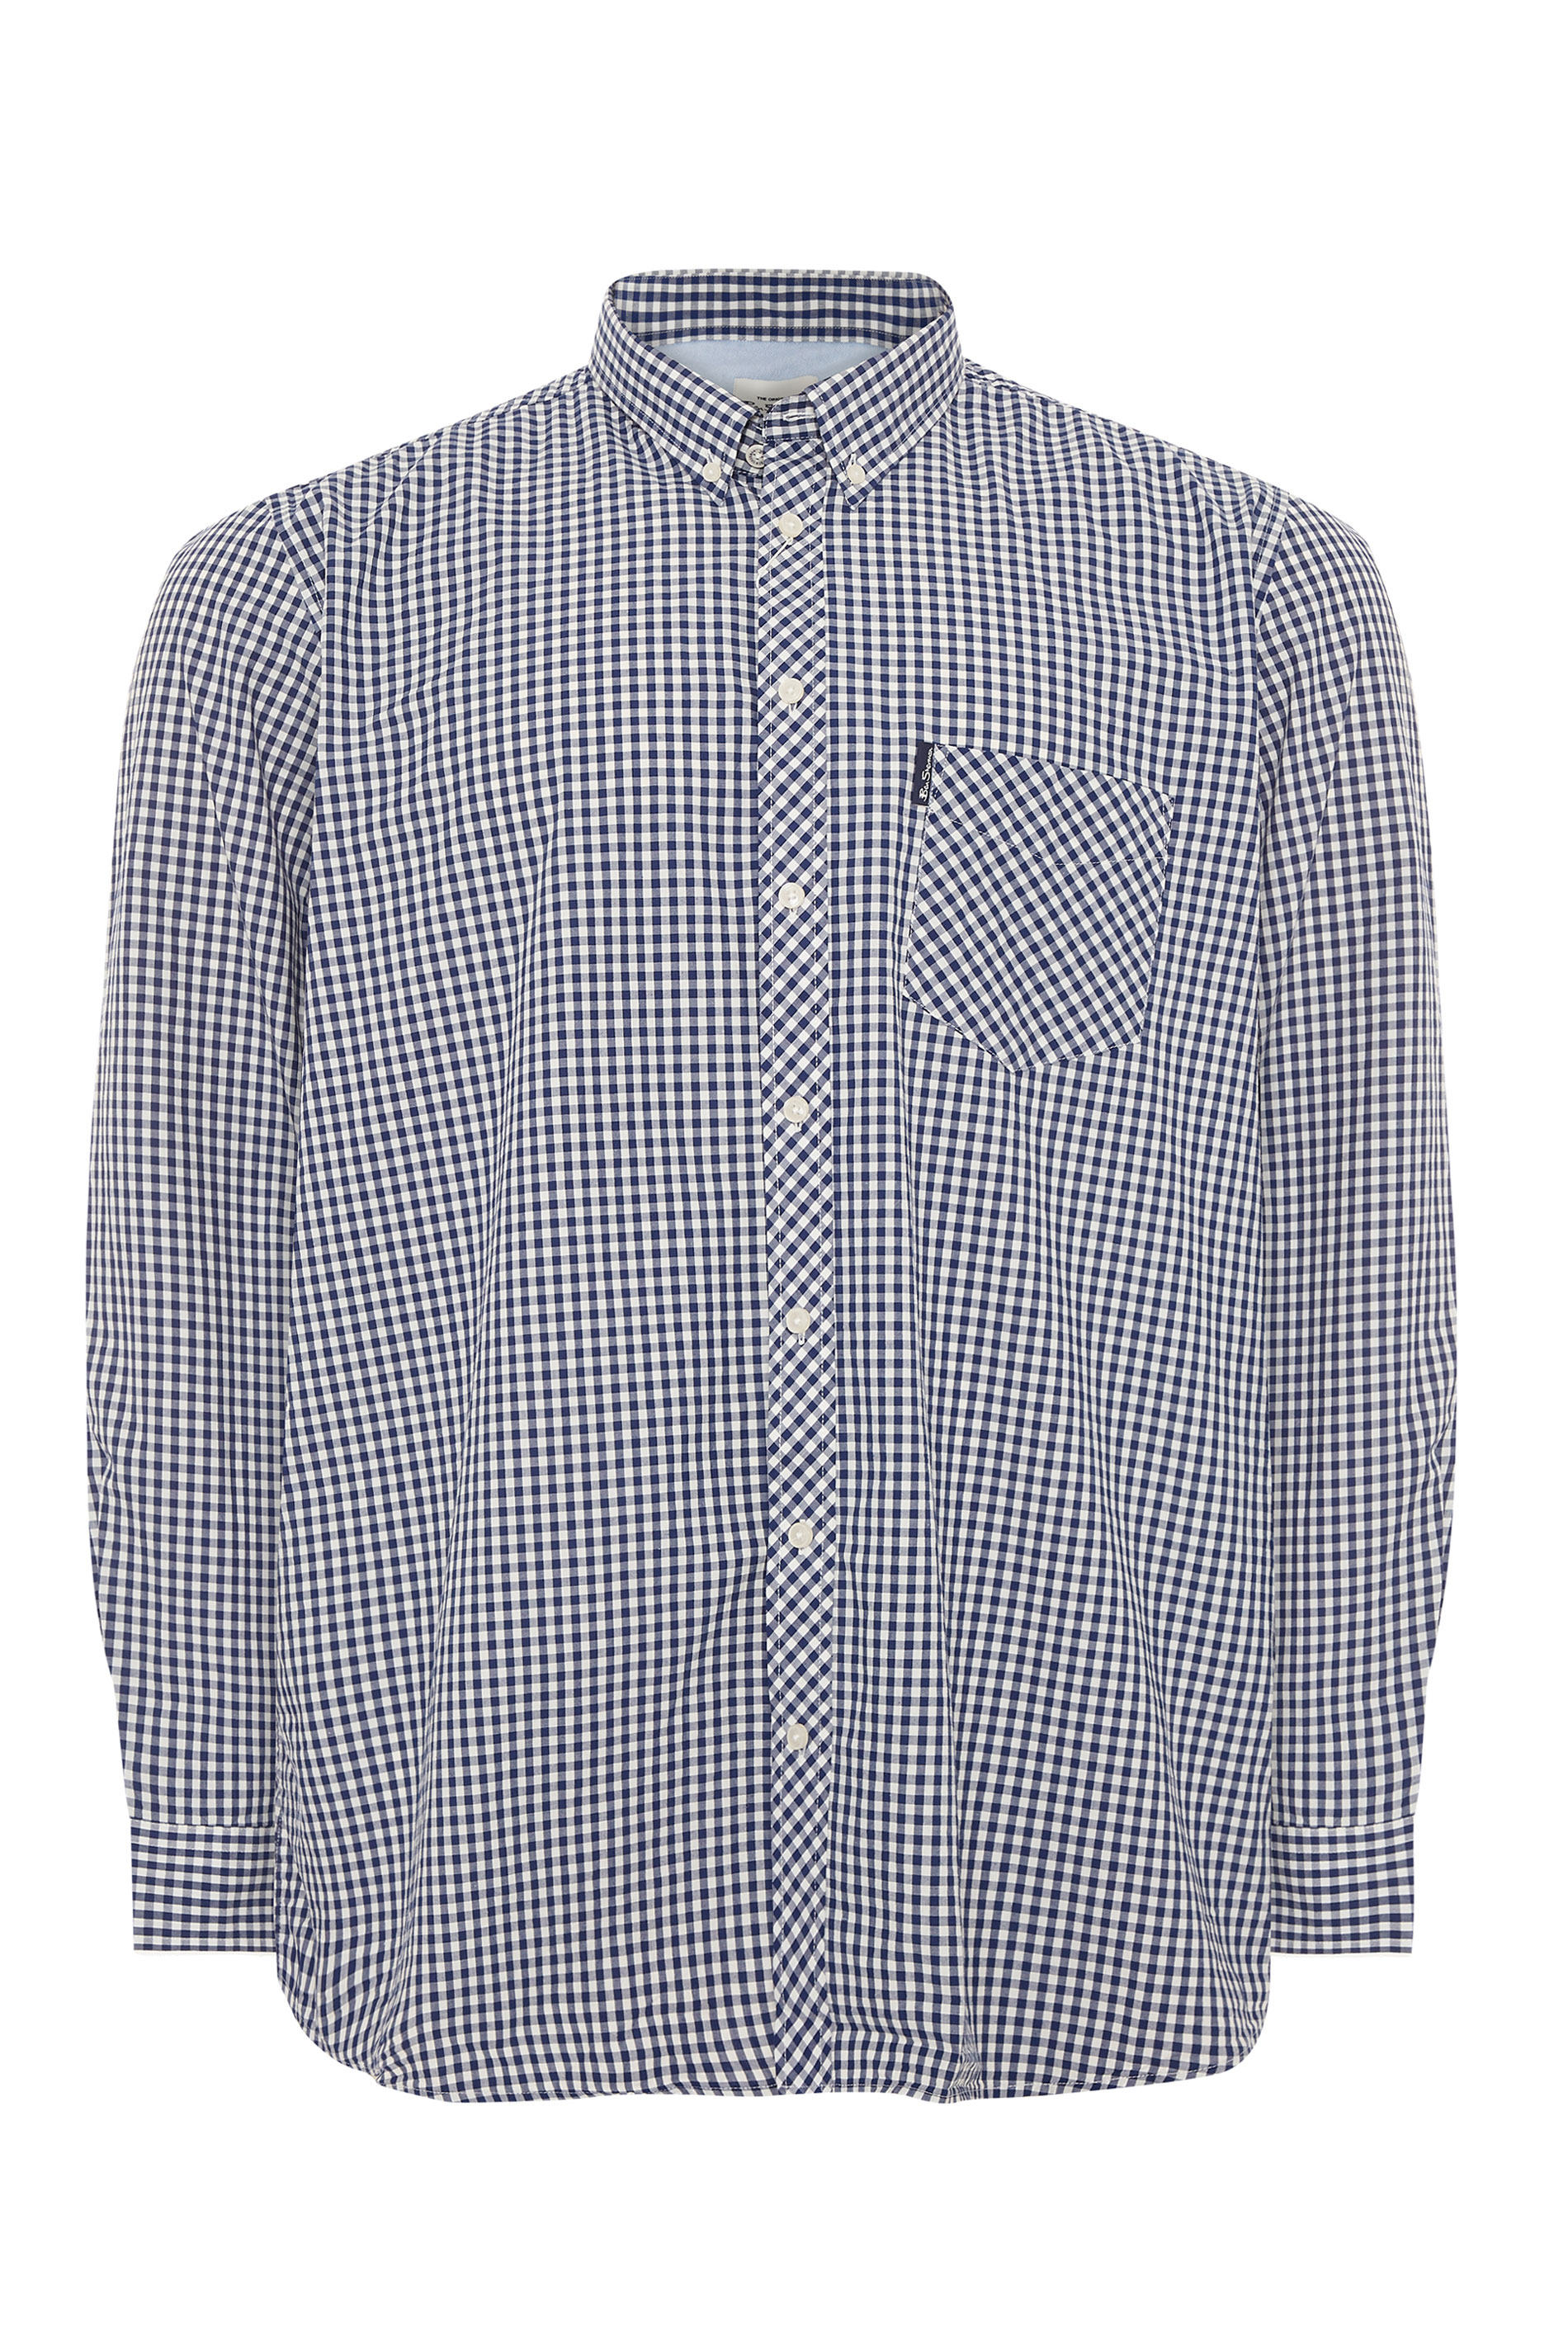 BEN SHERMAN Blue Check Signature Long Sleeve Shirt